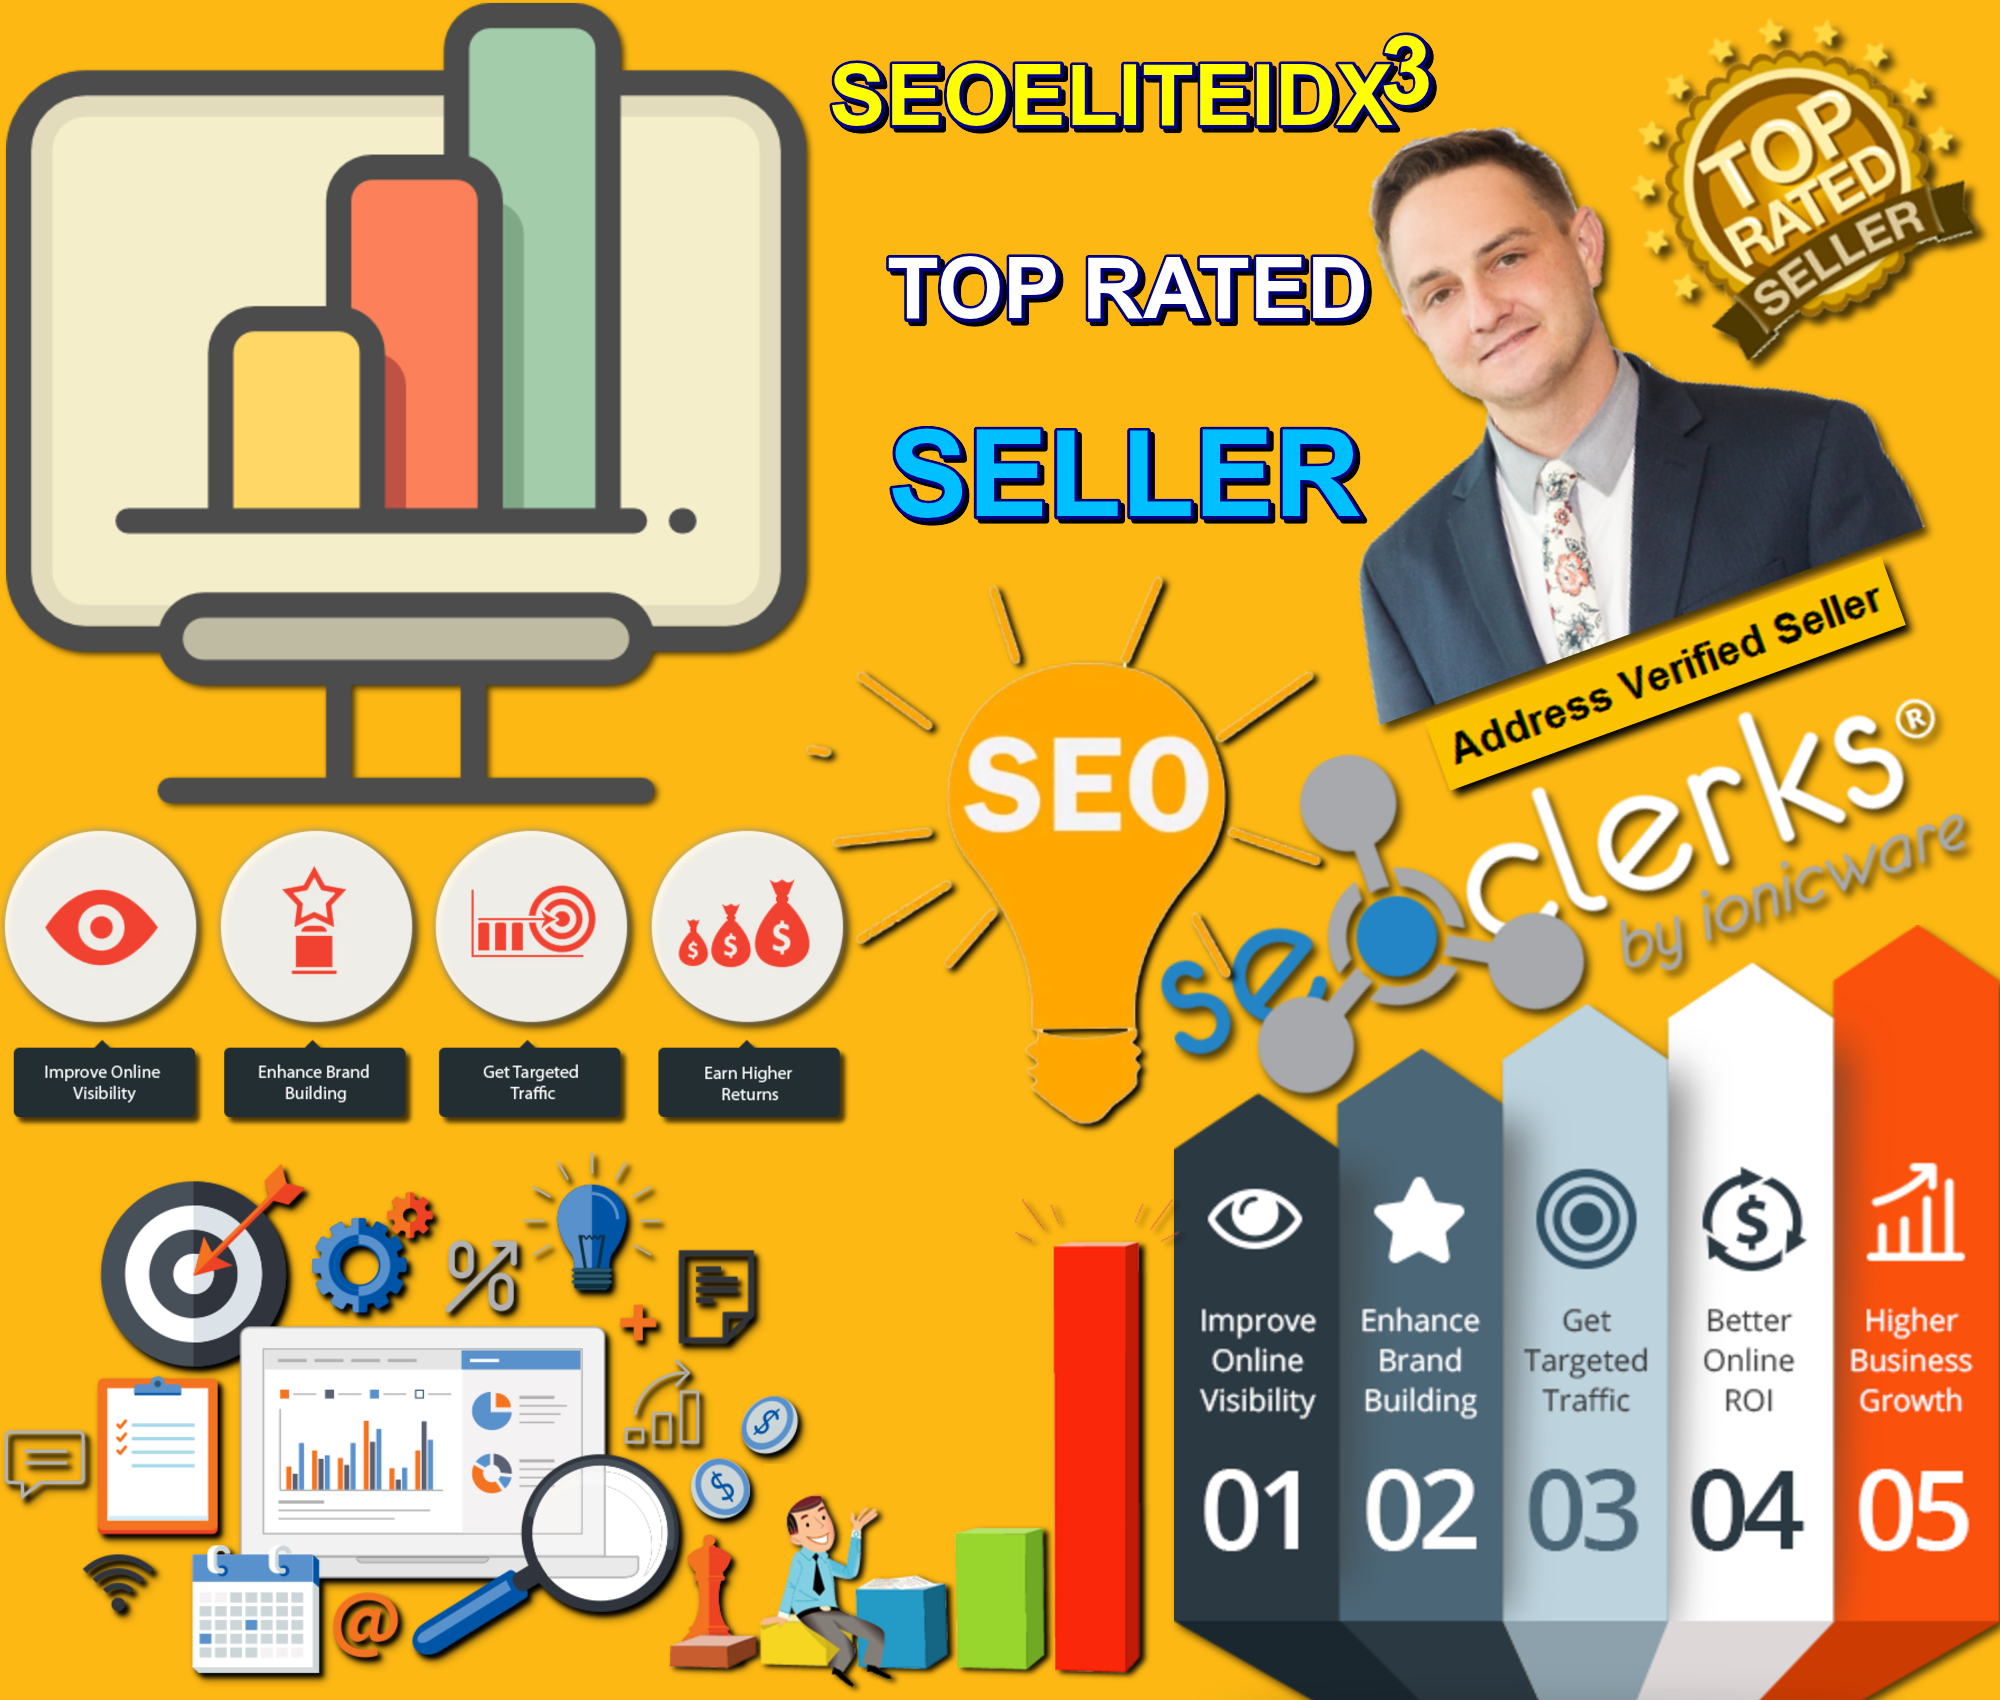 5 Million Worldwide USA Unlimited Websites Targeted Visitors People Hits Traffic High Quality SEO Services 40+ Million Social Media Group AdSense Safe